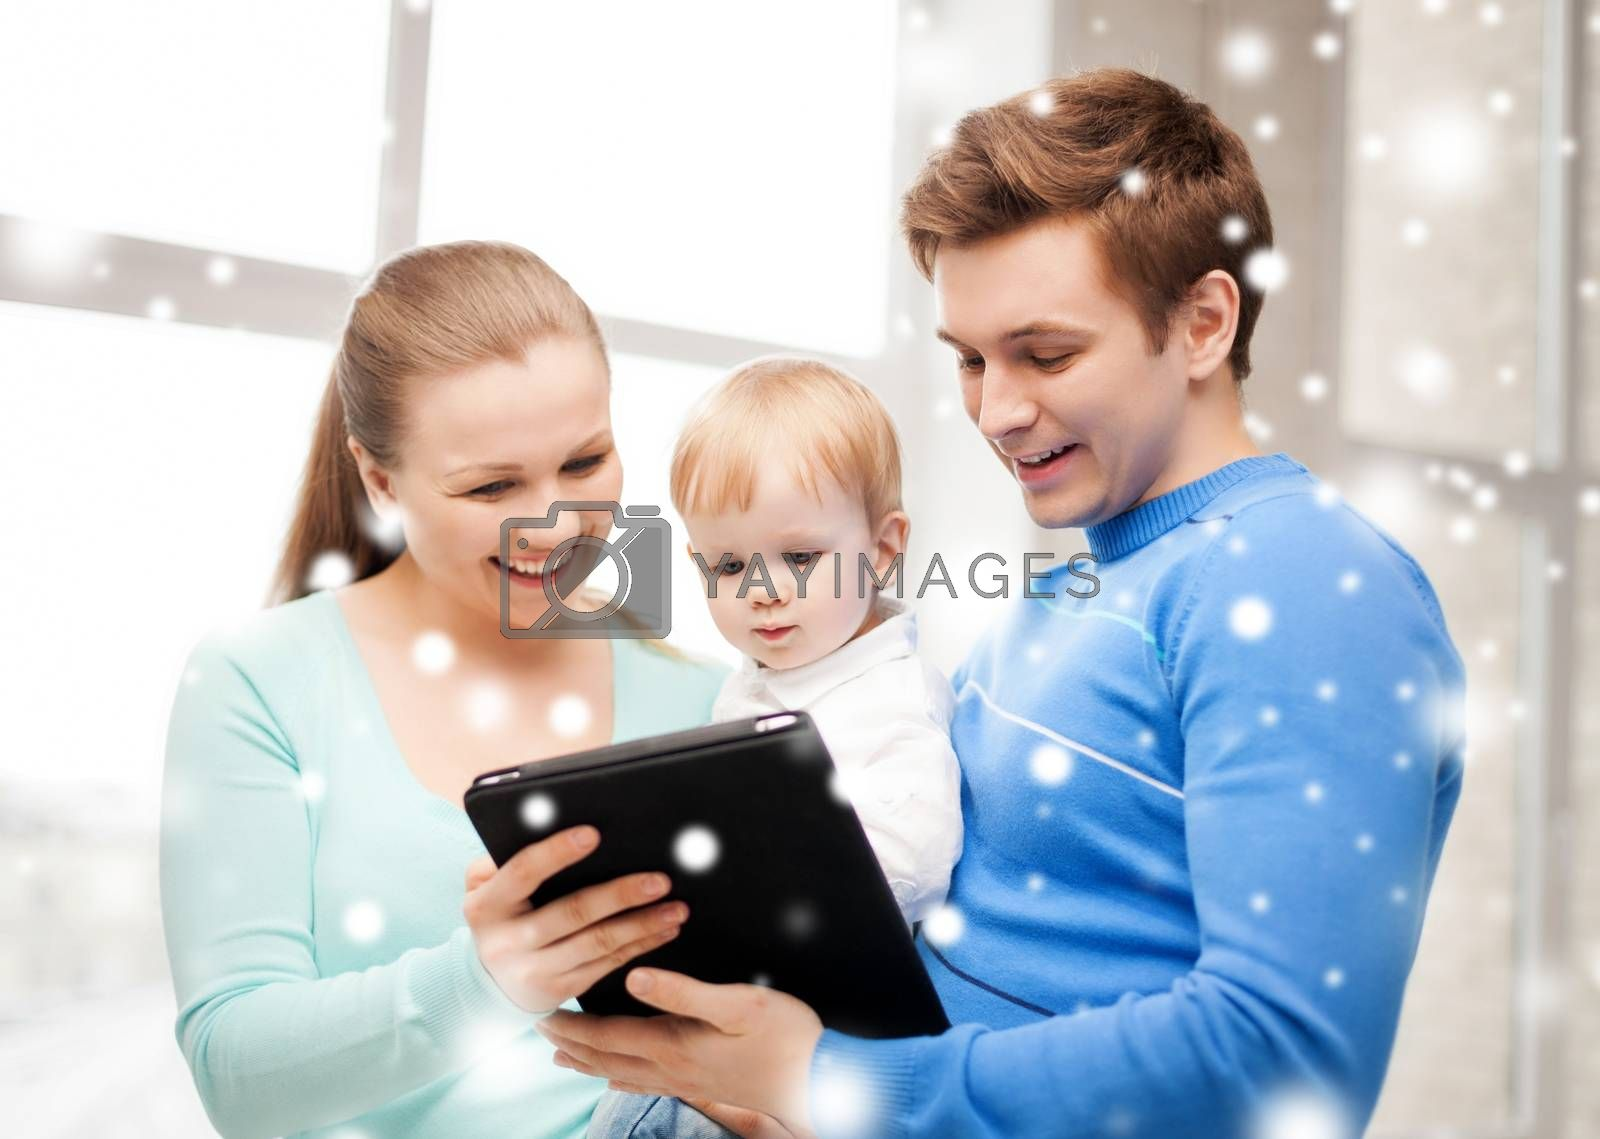 family, children, christmas, x-mas, love, technology concept - happy parents and adorable baby with tablet pc